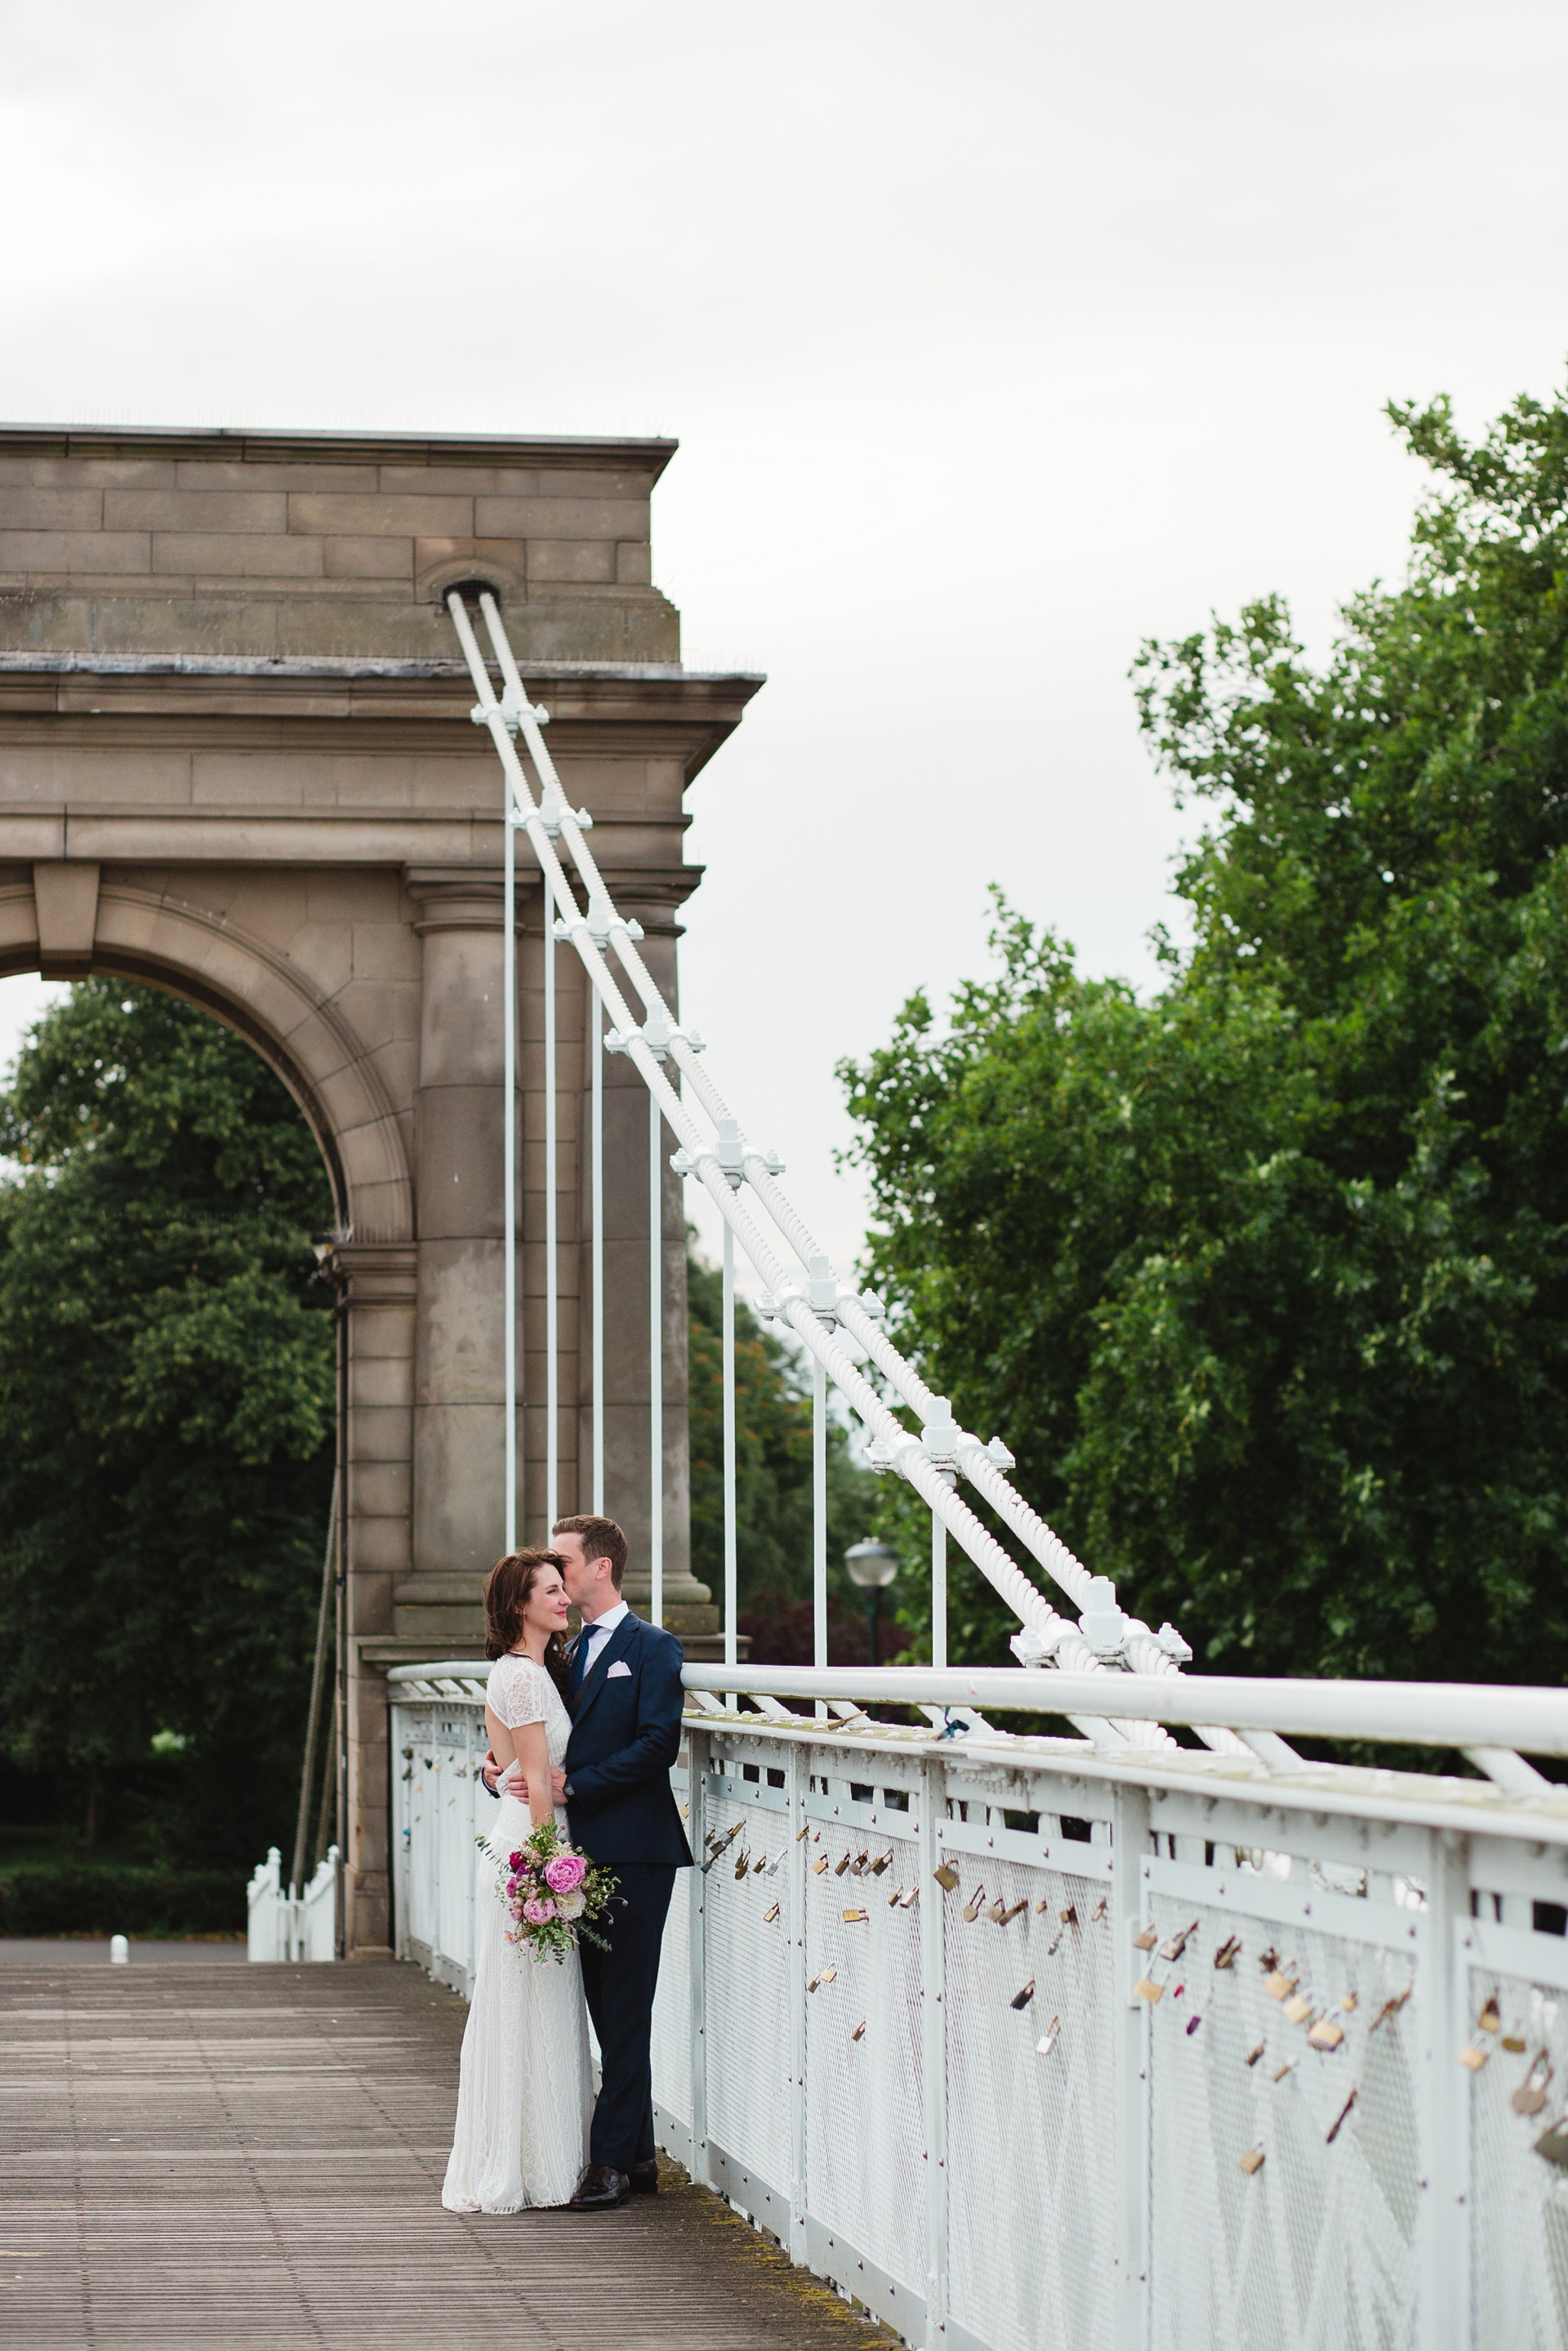 Wedding photos Nottingham Trent Embankment